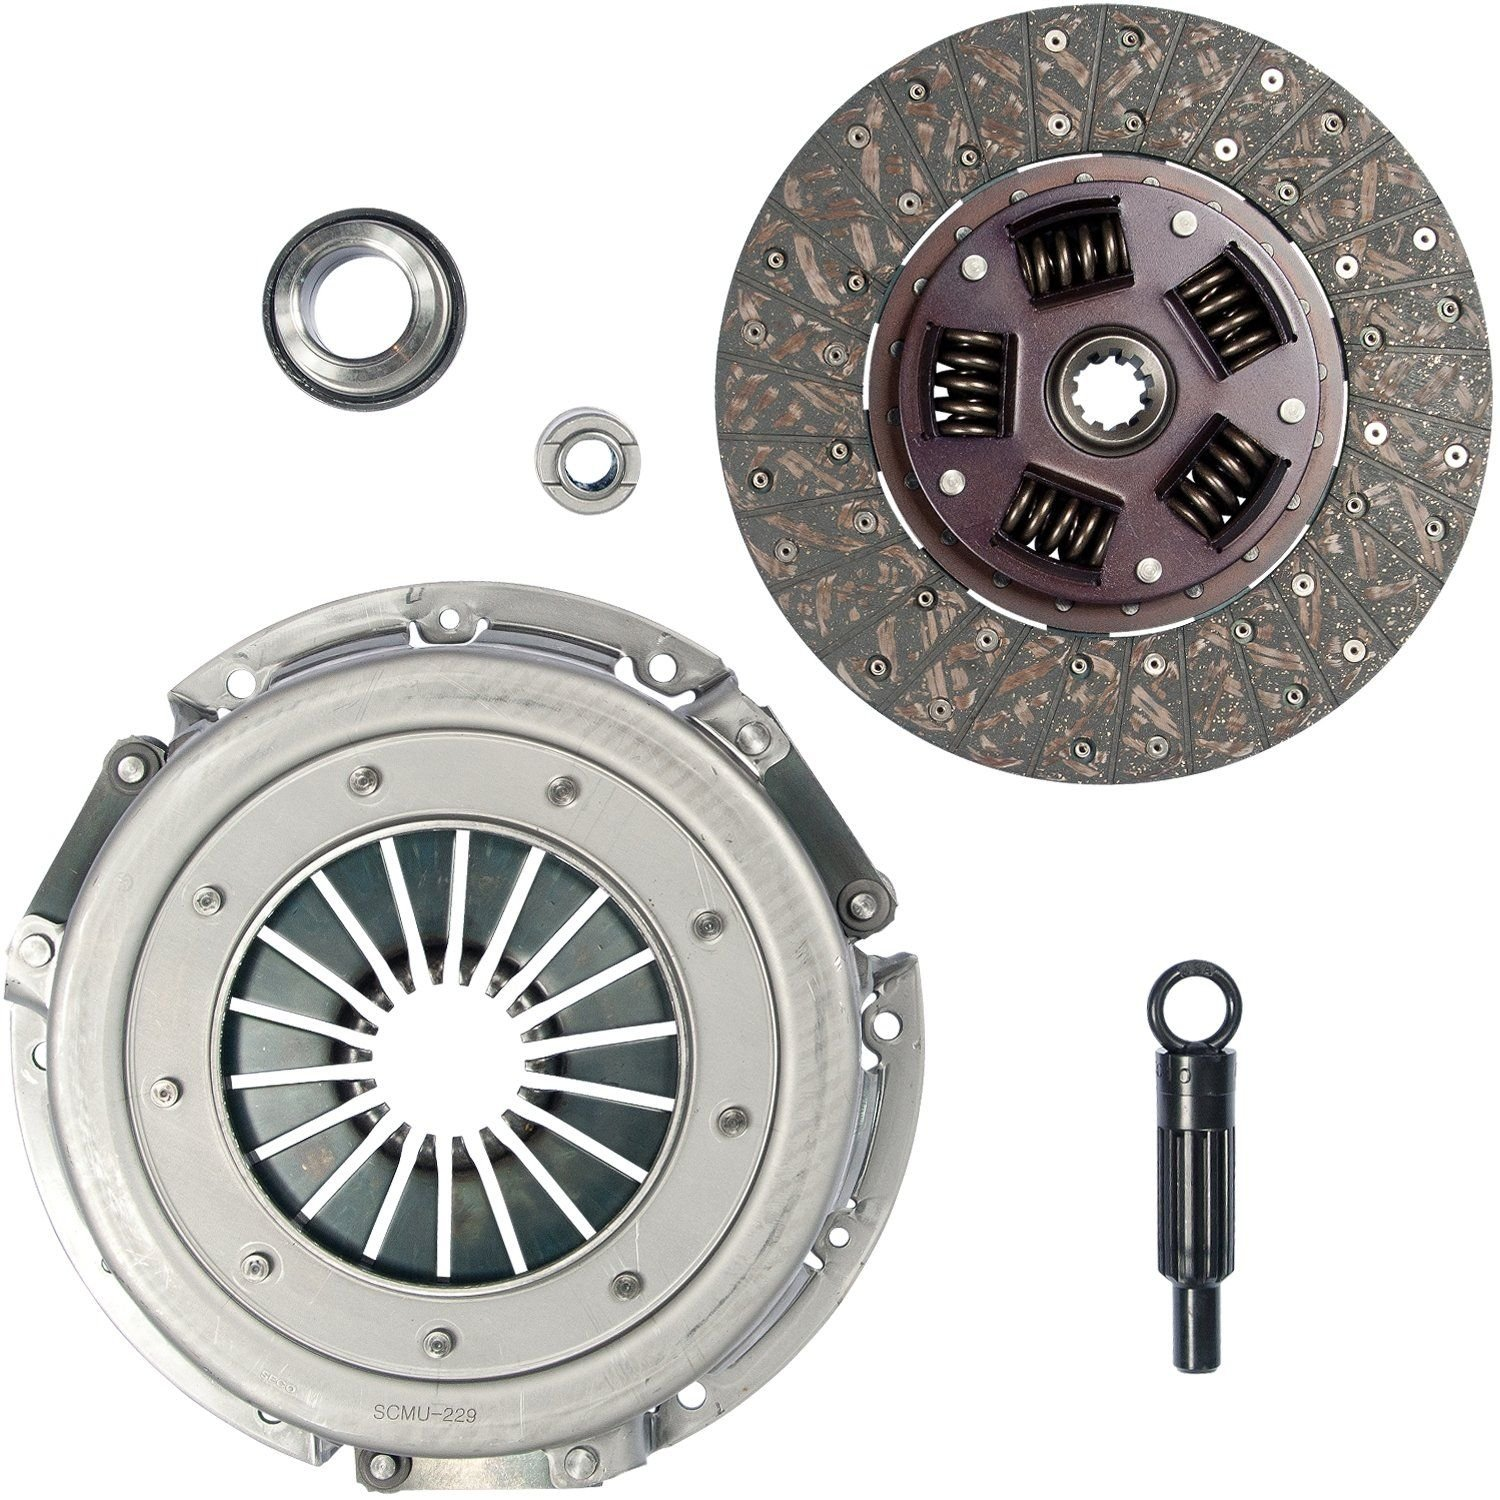 1986 Ford Mustang Clutch Kit 8 Cyl 5.0L (Rhino Pac 07-042) Created from row  number: 8534 Flywheel Spec: FLAT .